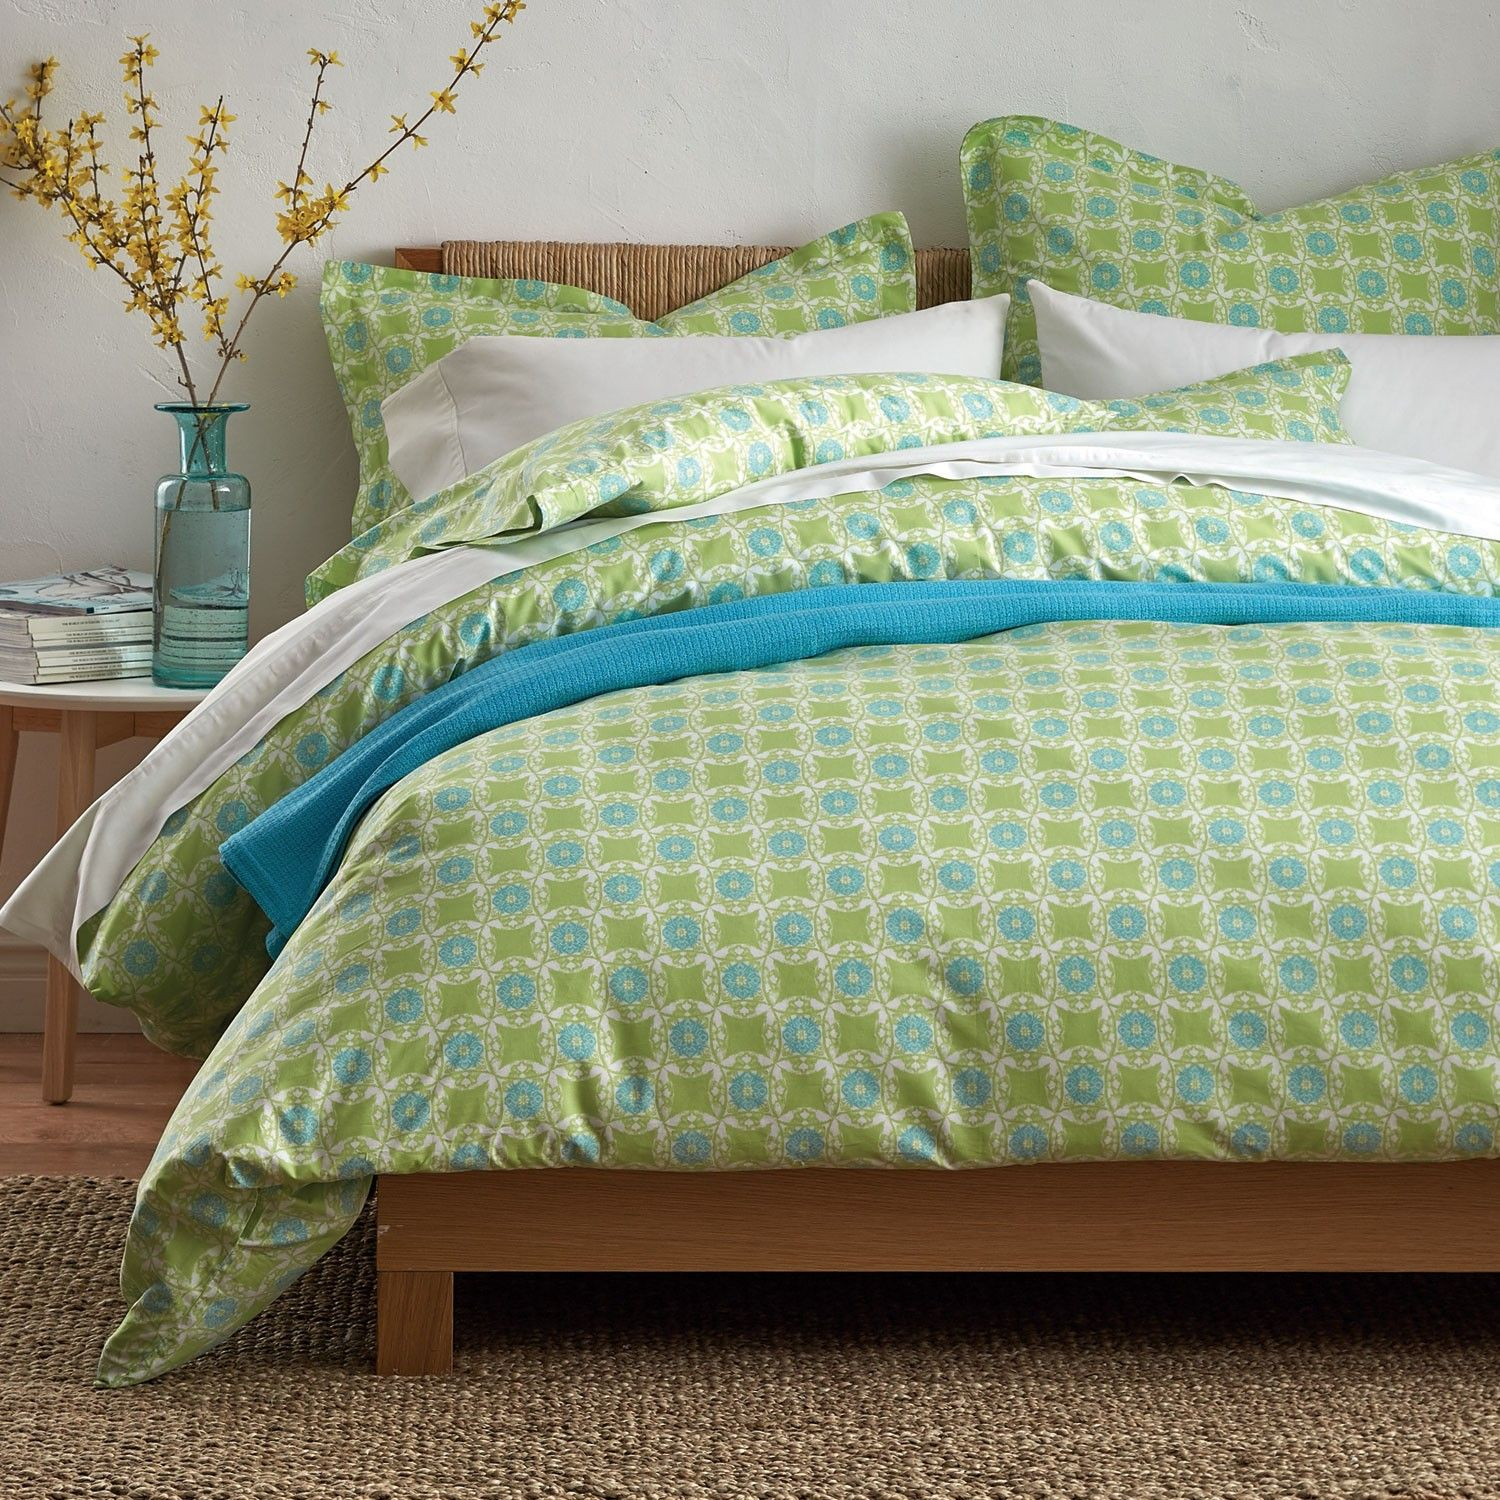 Floral medallion sheets and bedding set, cast in fresh